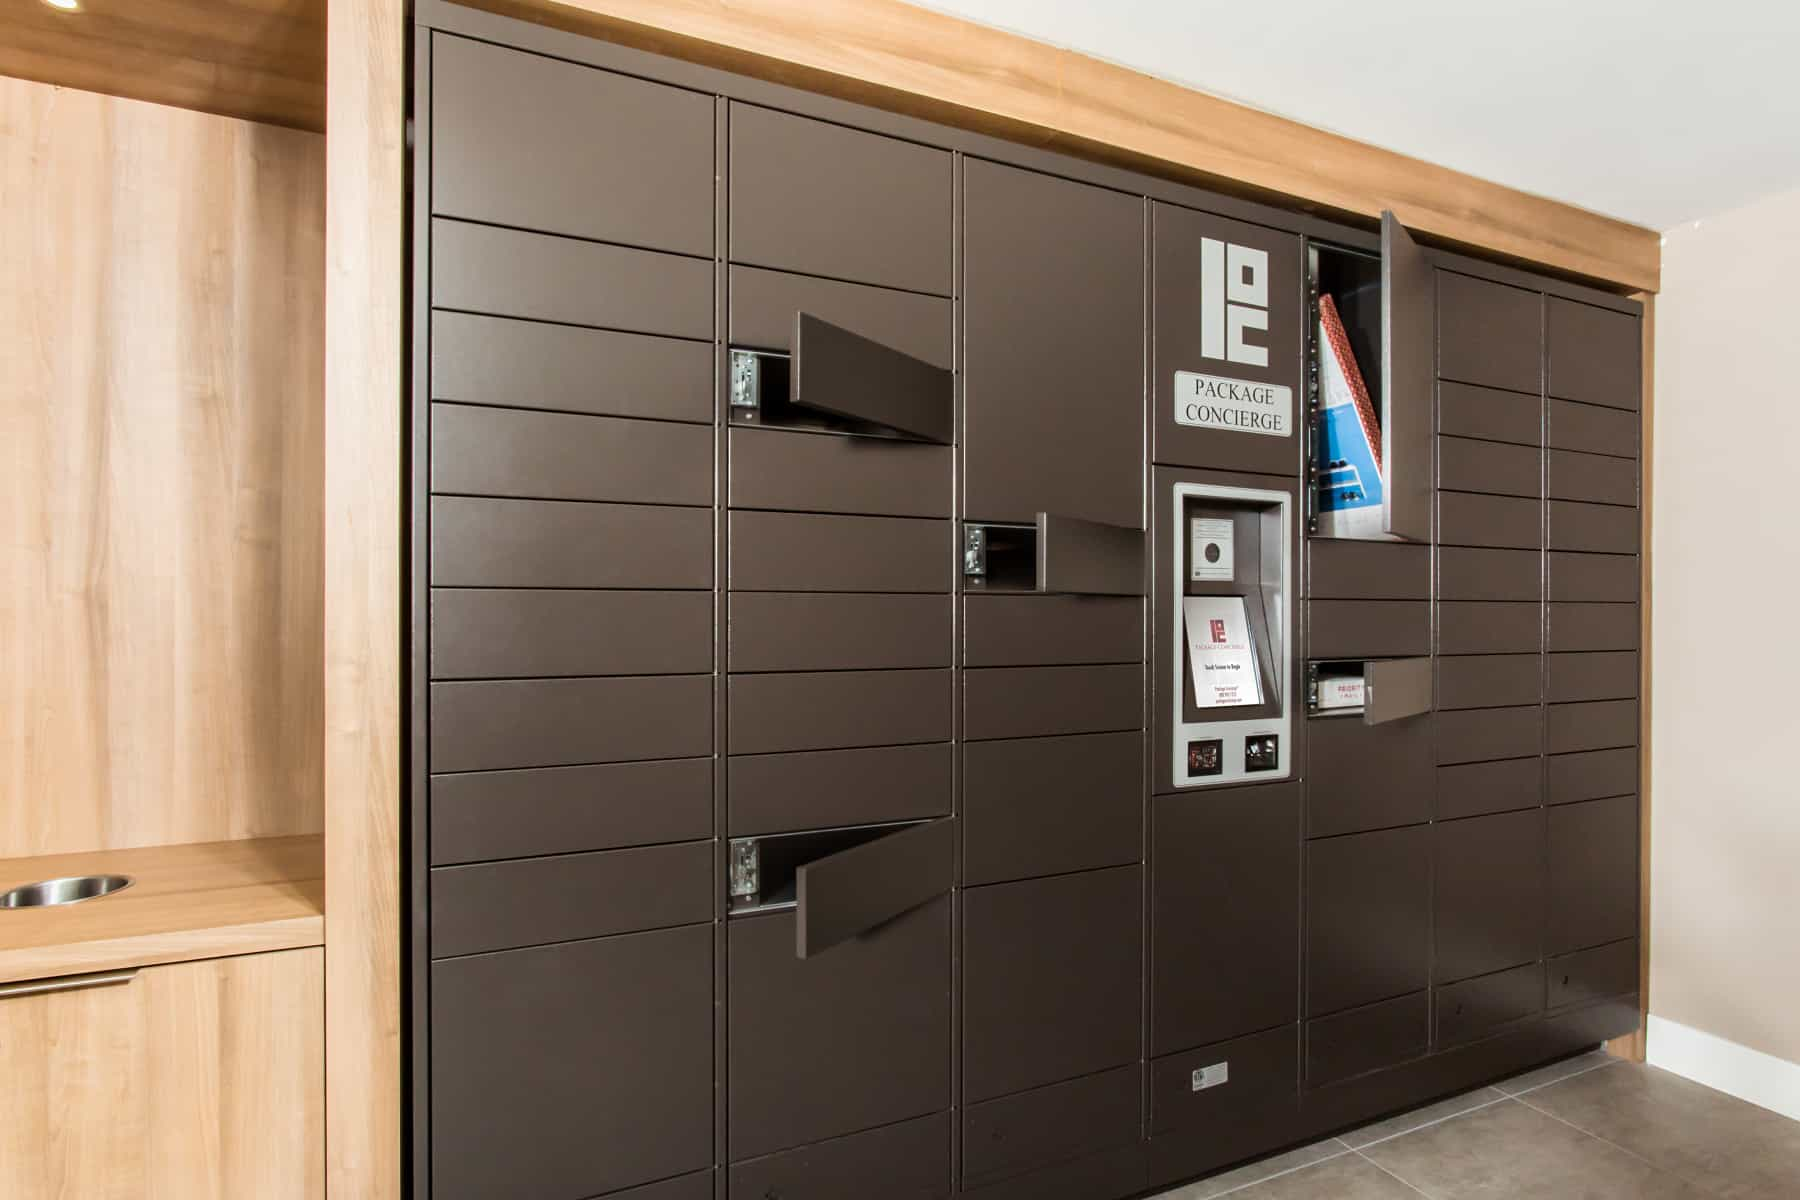 Package Locker Compartments Open to Reveal Multiple Package Deliveries